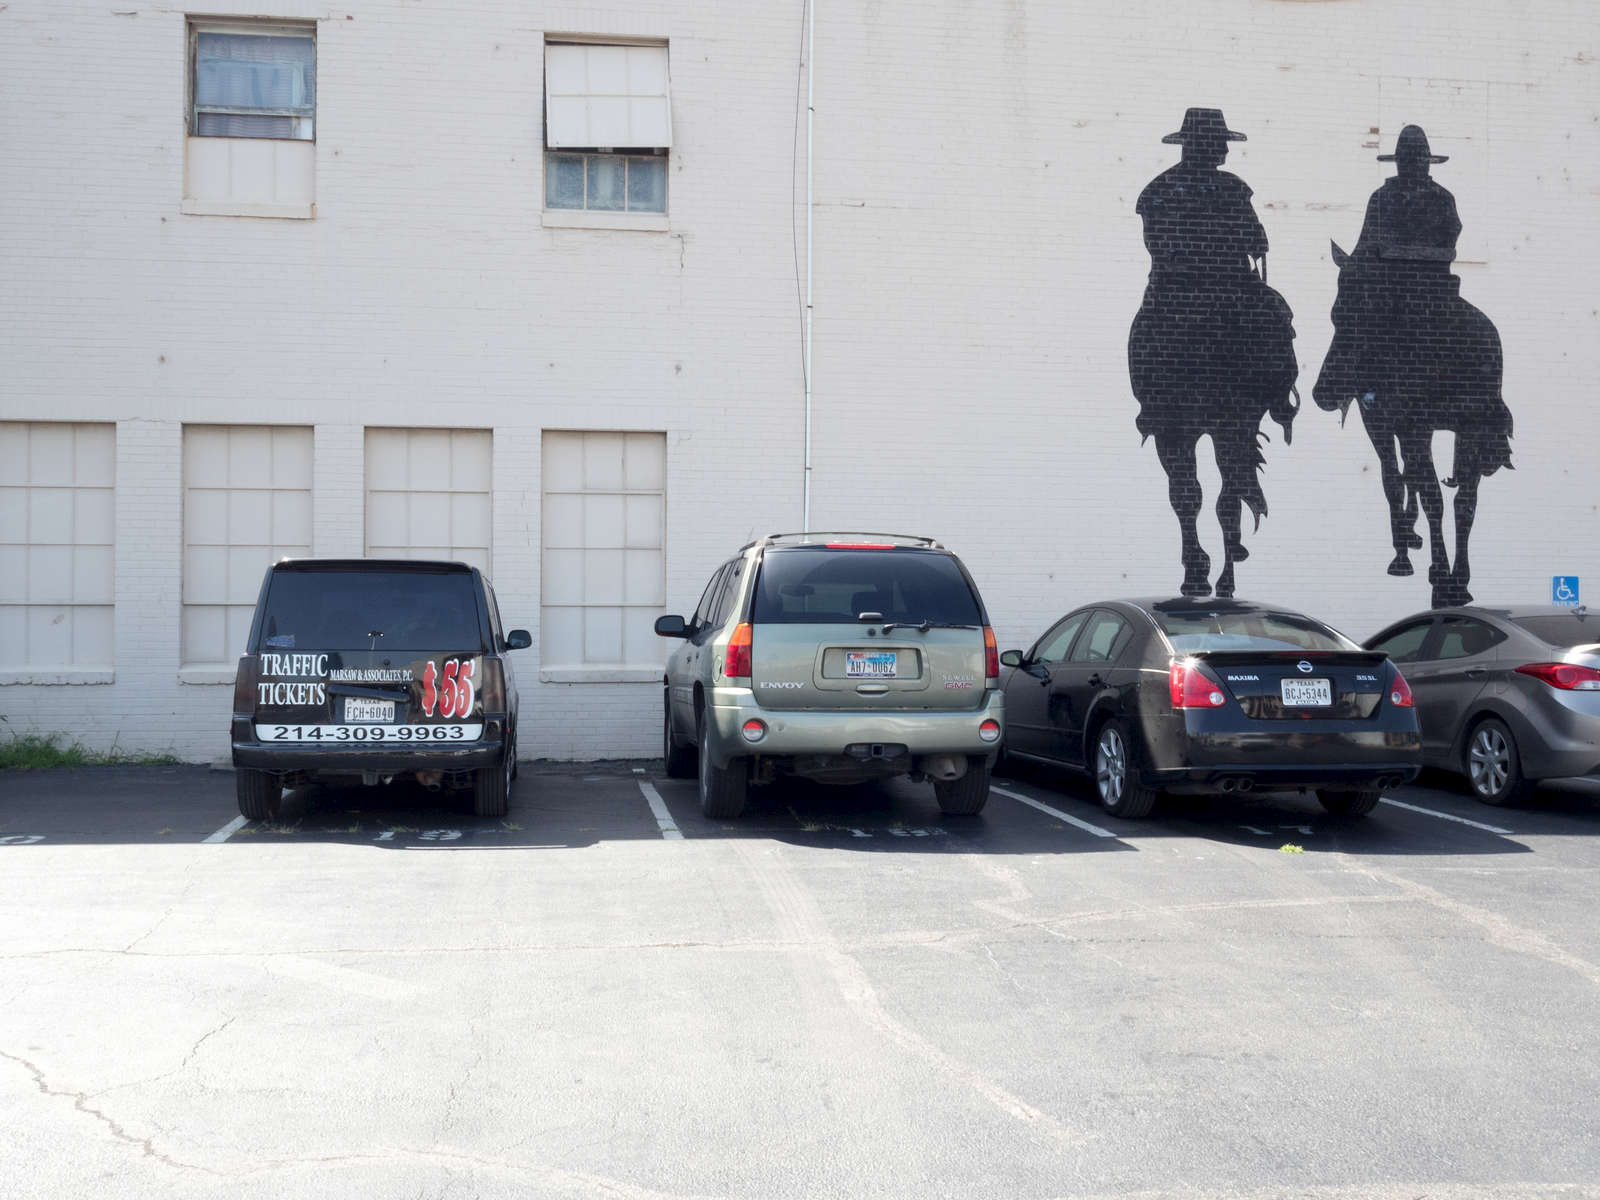 Cowboys painted on to the wall of a car park in south Dallas.Dallas is a major city in Texas and is the largest urban center of the fourth most populous metropolitan area in the United States. The city ranks ninth in the U.S. and third in Texas after Houston and San Antonio. The city's prominence arose from its historical importance as a center for the oil and cotton industries, and its position along numerous railroad lines.For two weeks in the summer of 2015, photographer Peter Dench visited Dallas to document the metroplex in his epic reportage, DENCH DOES DALLAS.Photographed using an Olympus E-M5 Mark II©Peter Dench/Getty Images Reportage